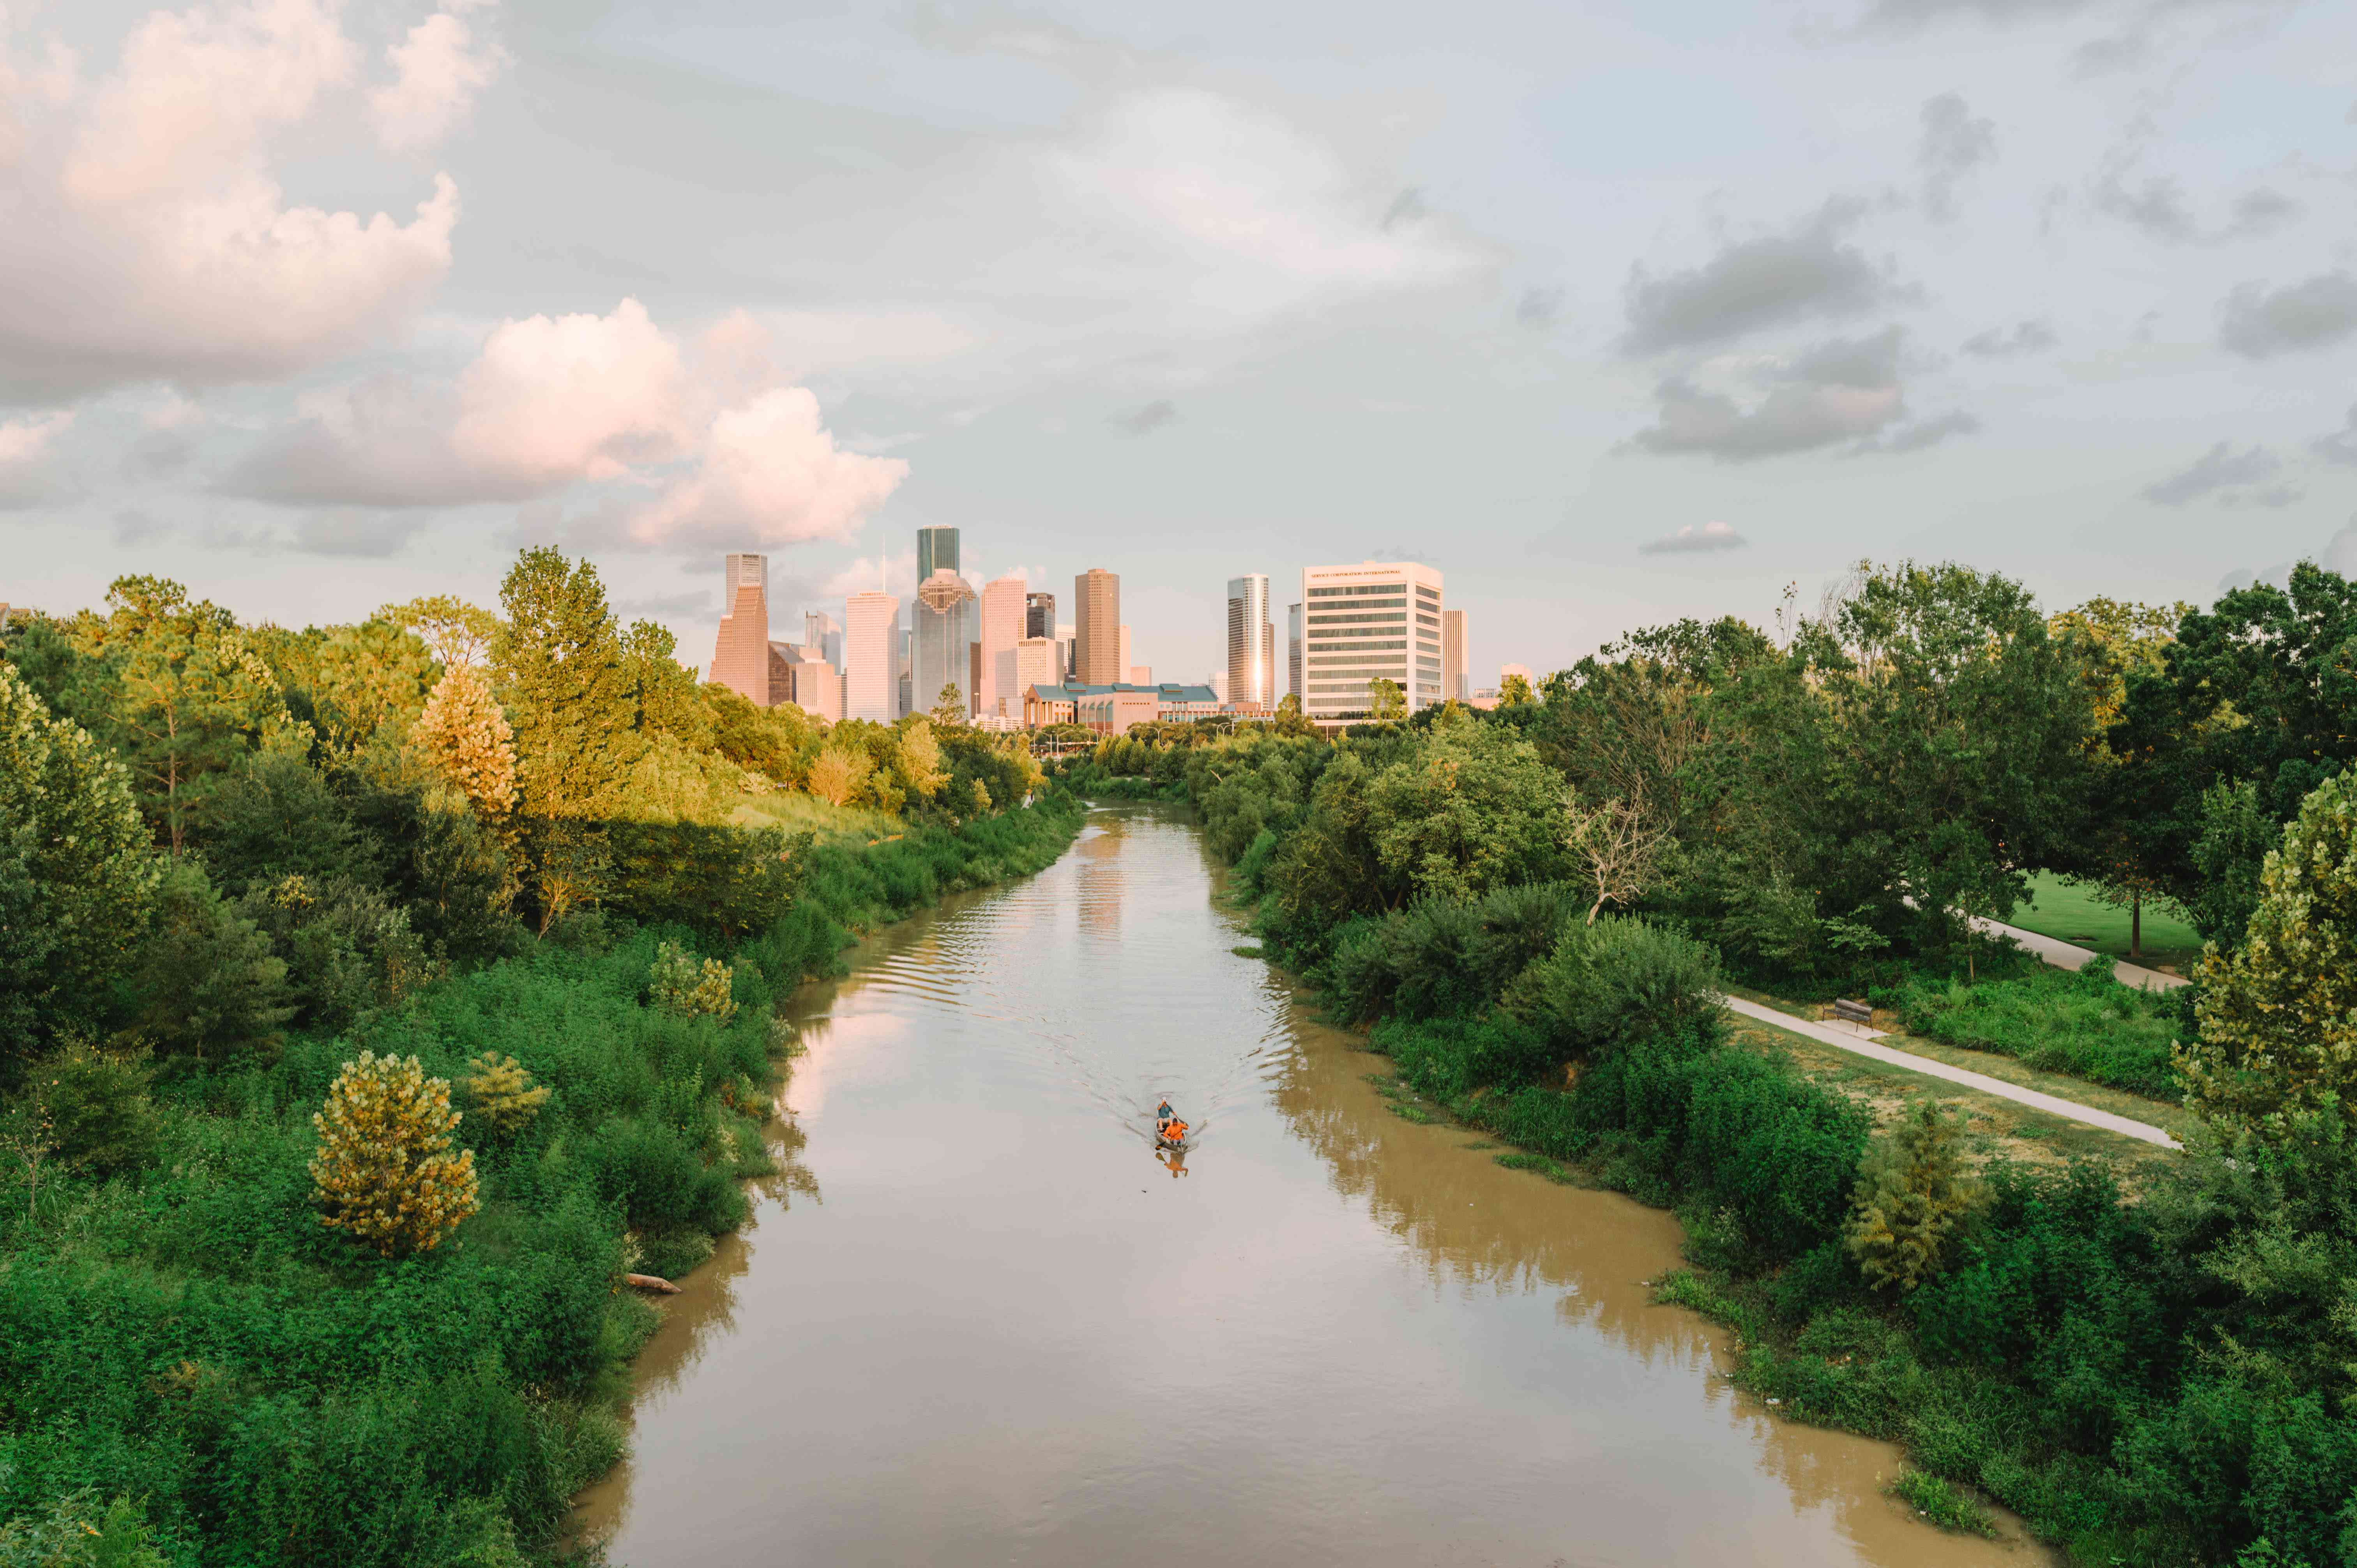 Someone kayaking down the river in Buffalo Bayou with the Houston skyline in the background